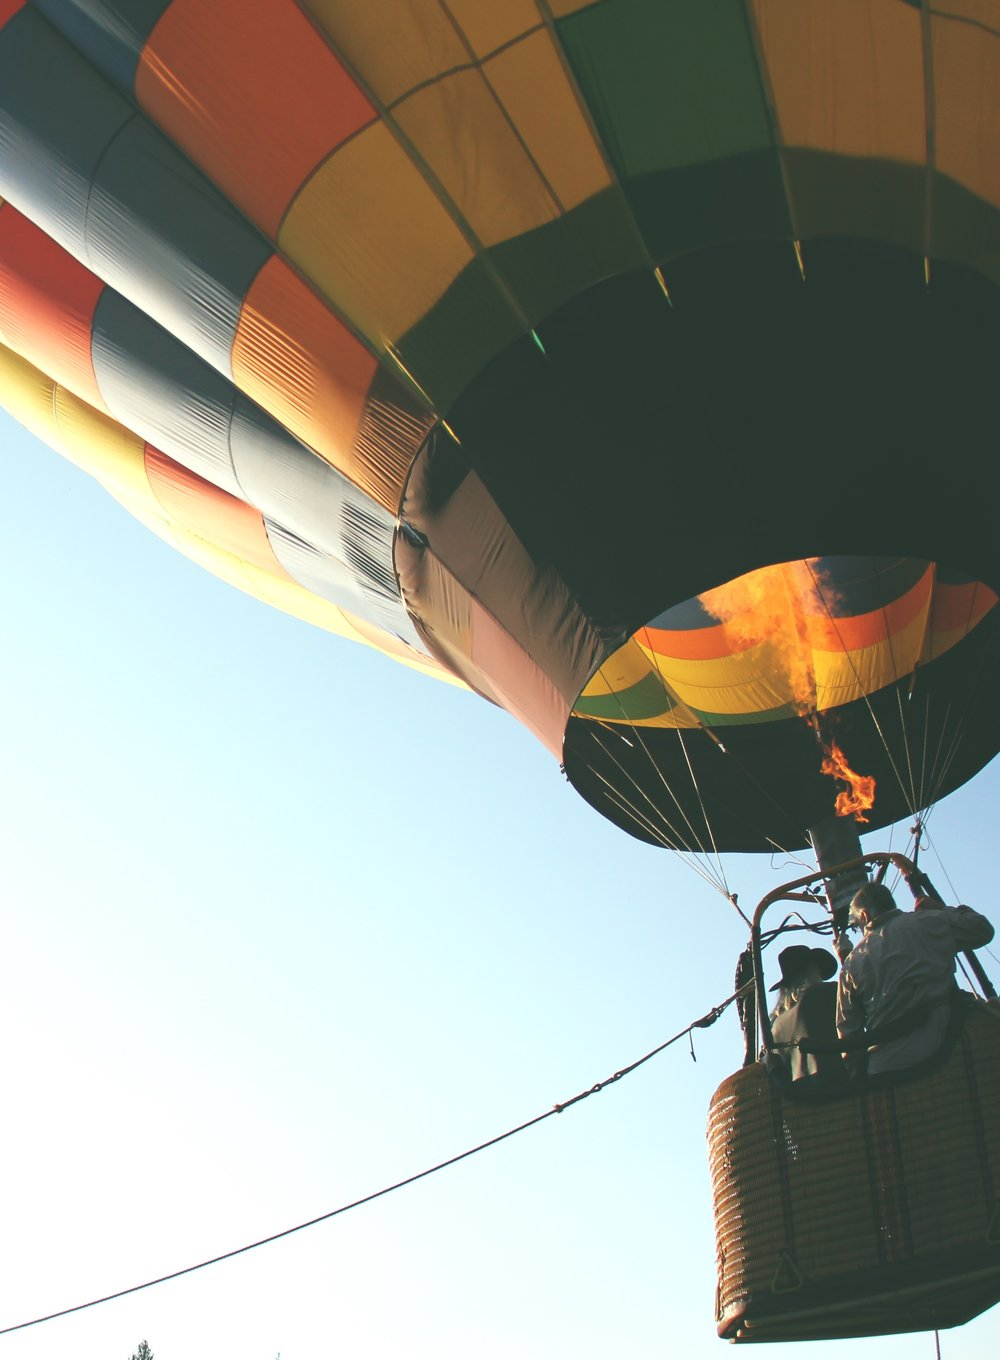 hot-air-balloon-401545.jpg